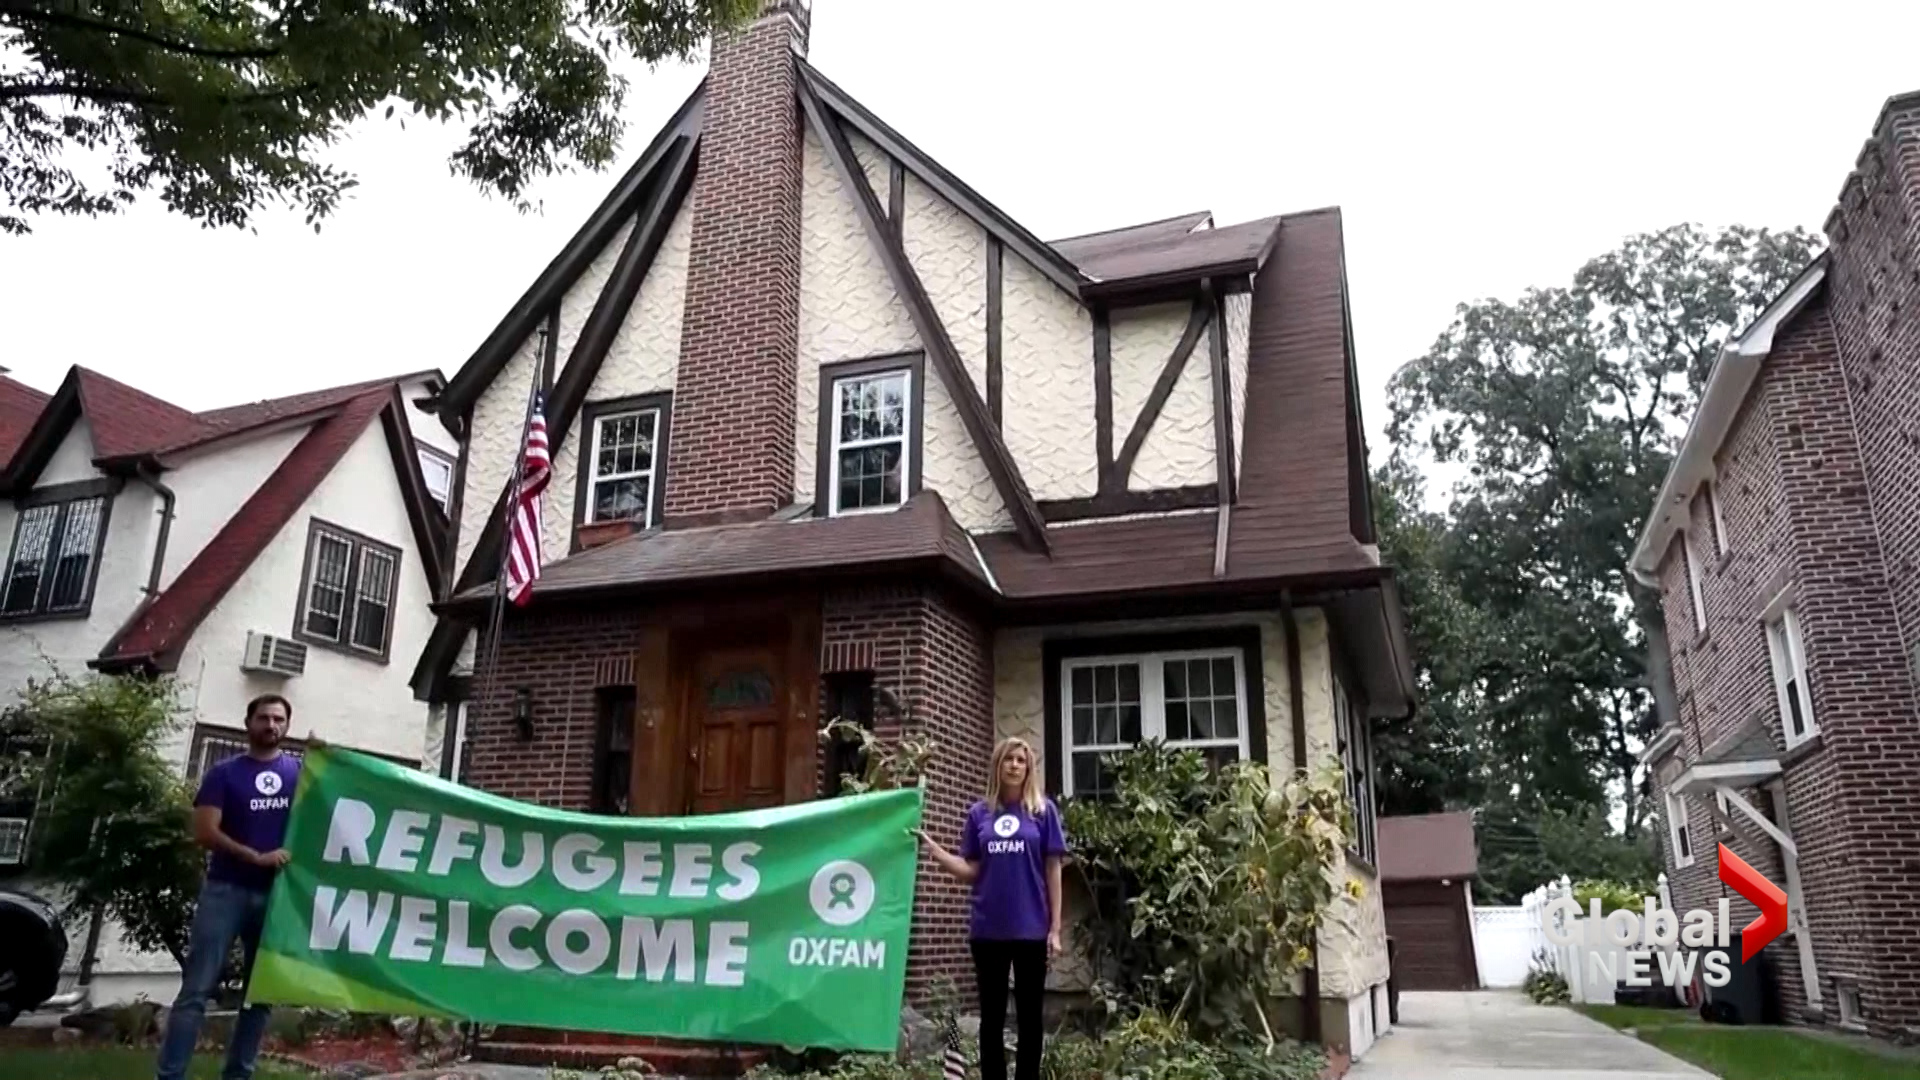 Group Opens Doors Of Trump's Childhood Home To Refugees